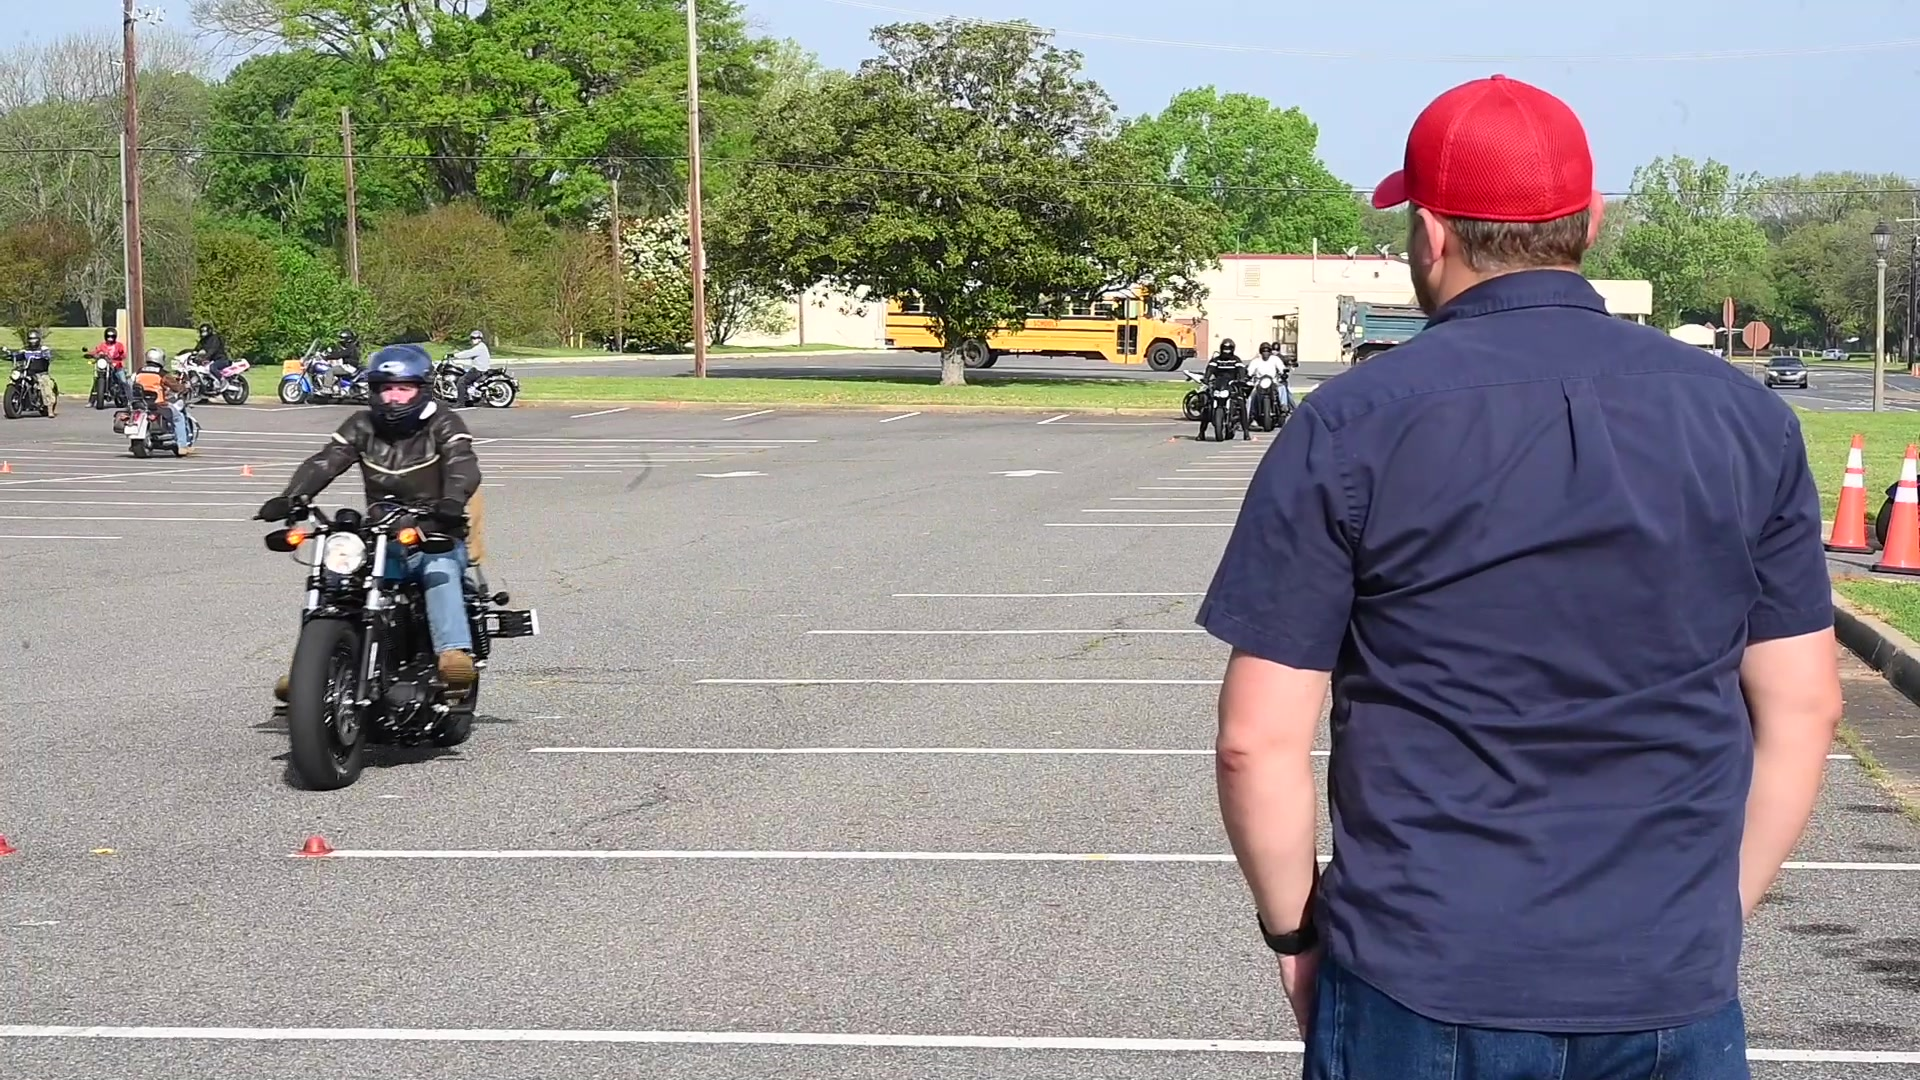 This video was created to spread awareness on motorcycle safety.